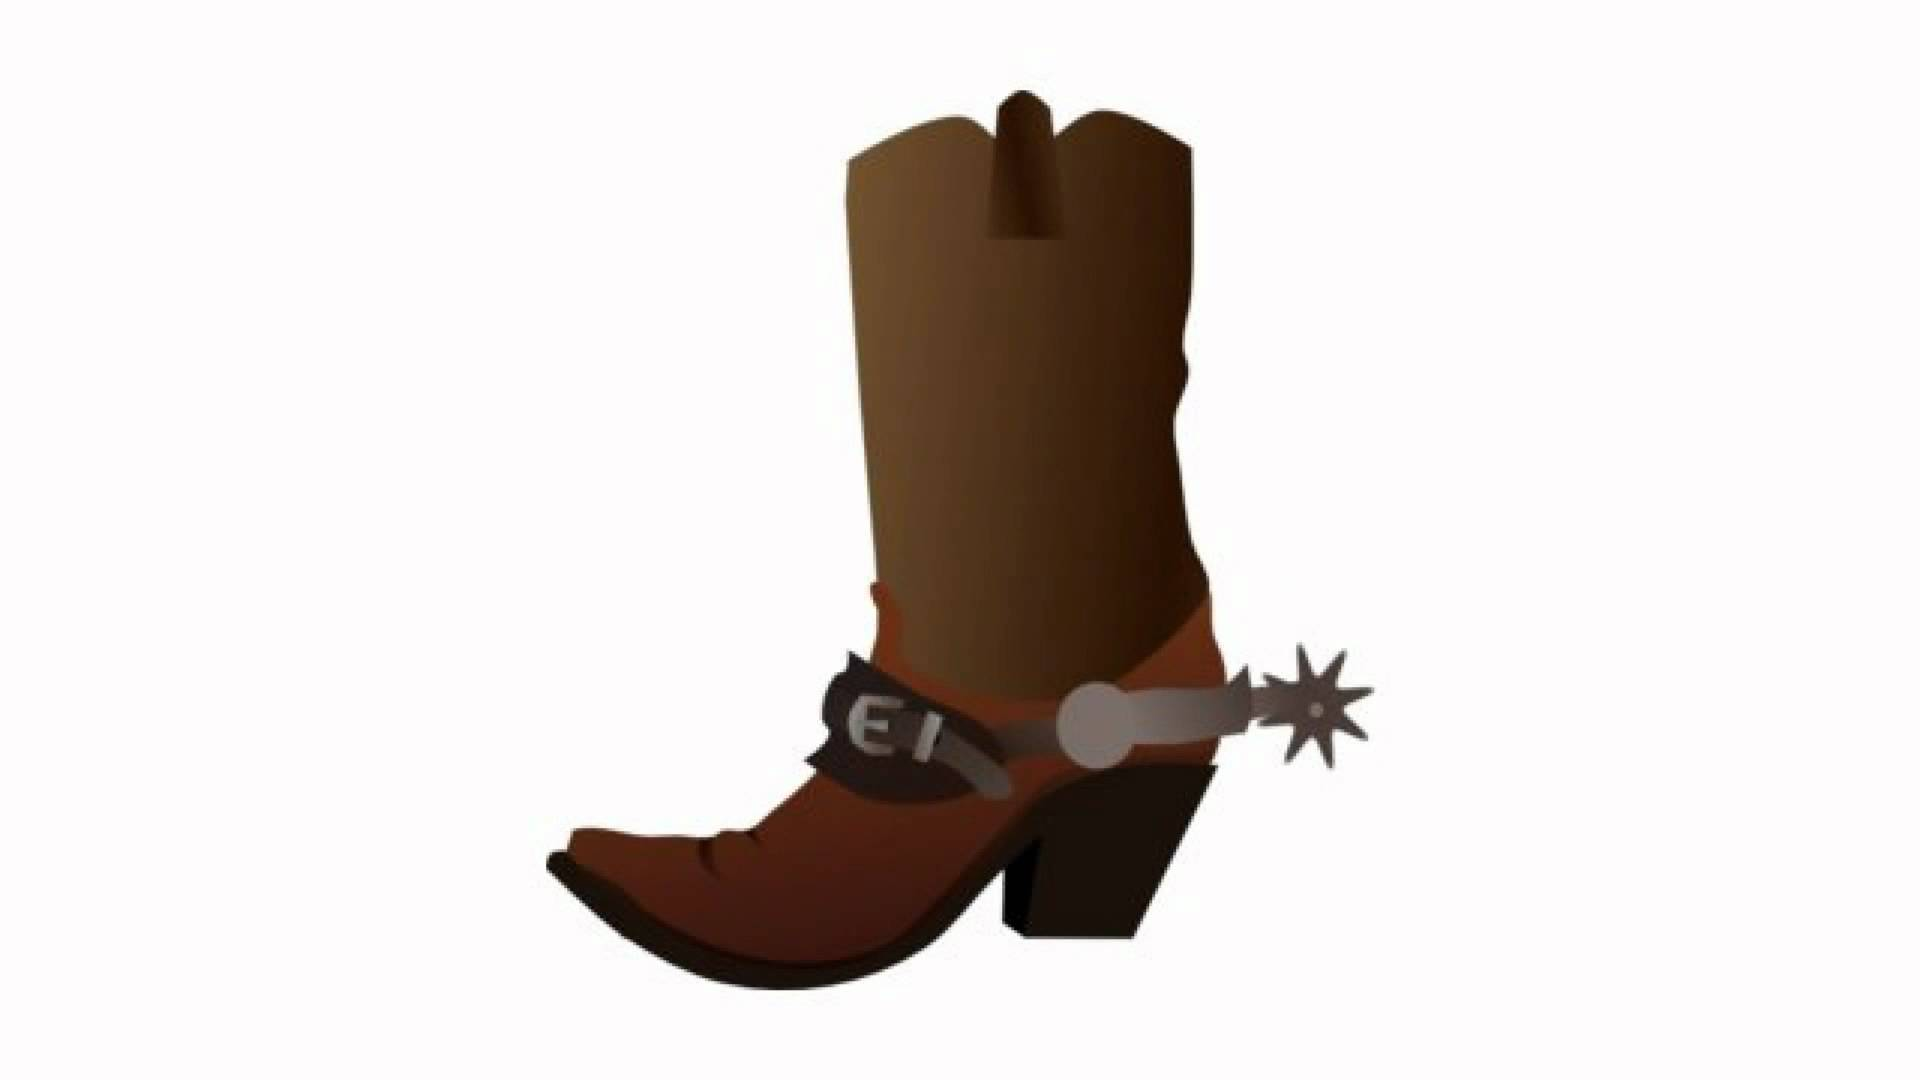 Cowboy Boot Spurs Sound Effect Youtube free image